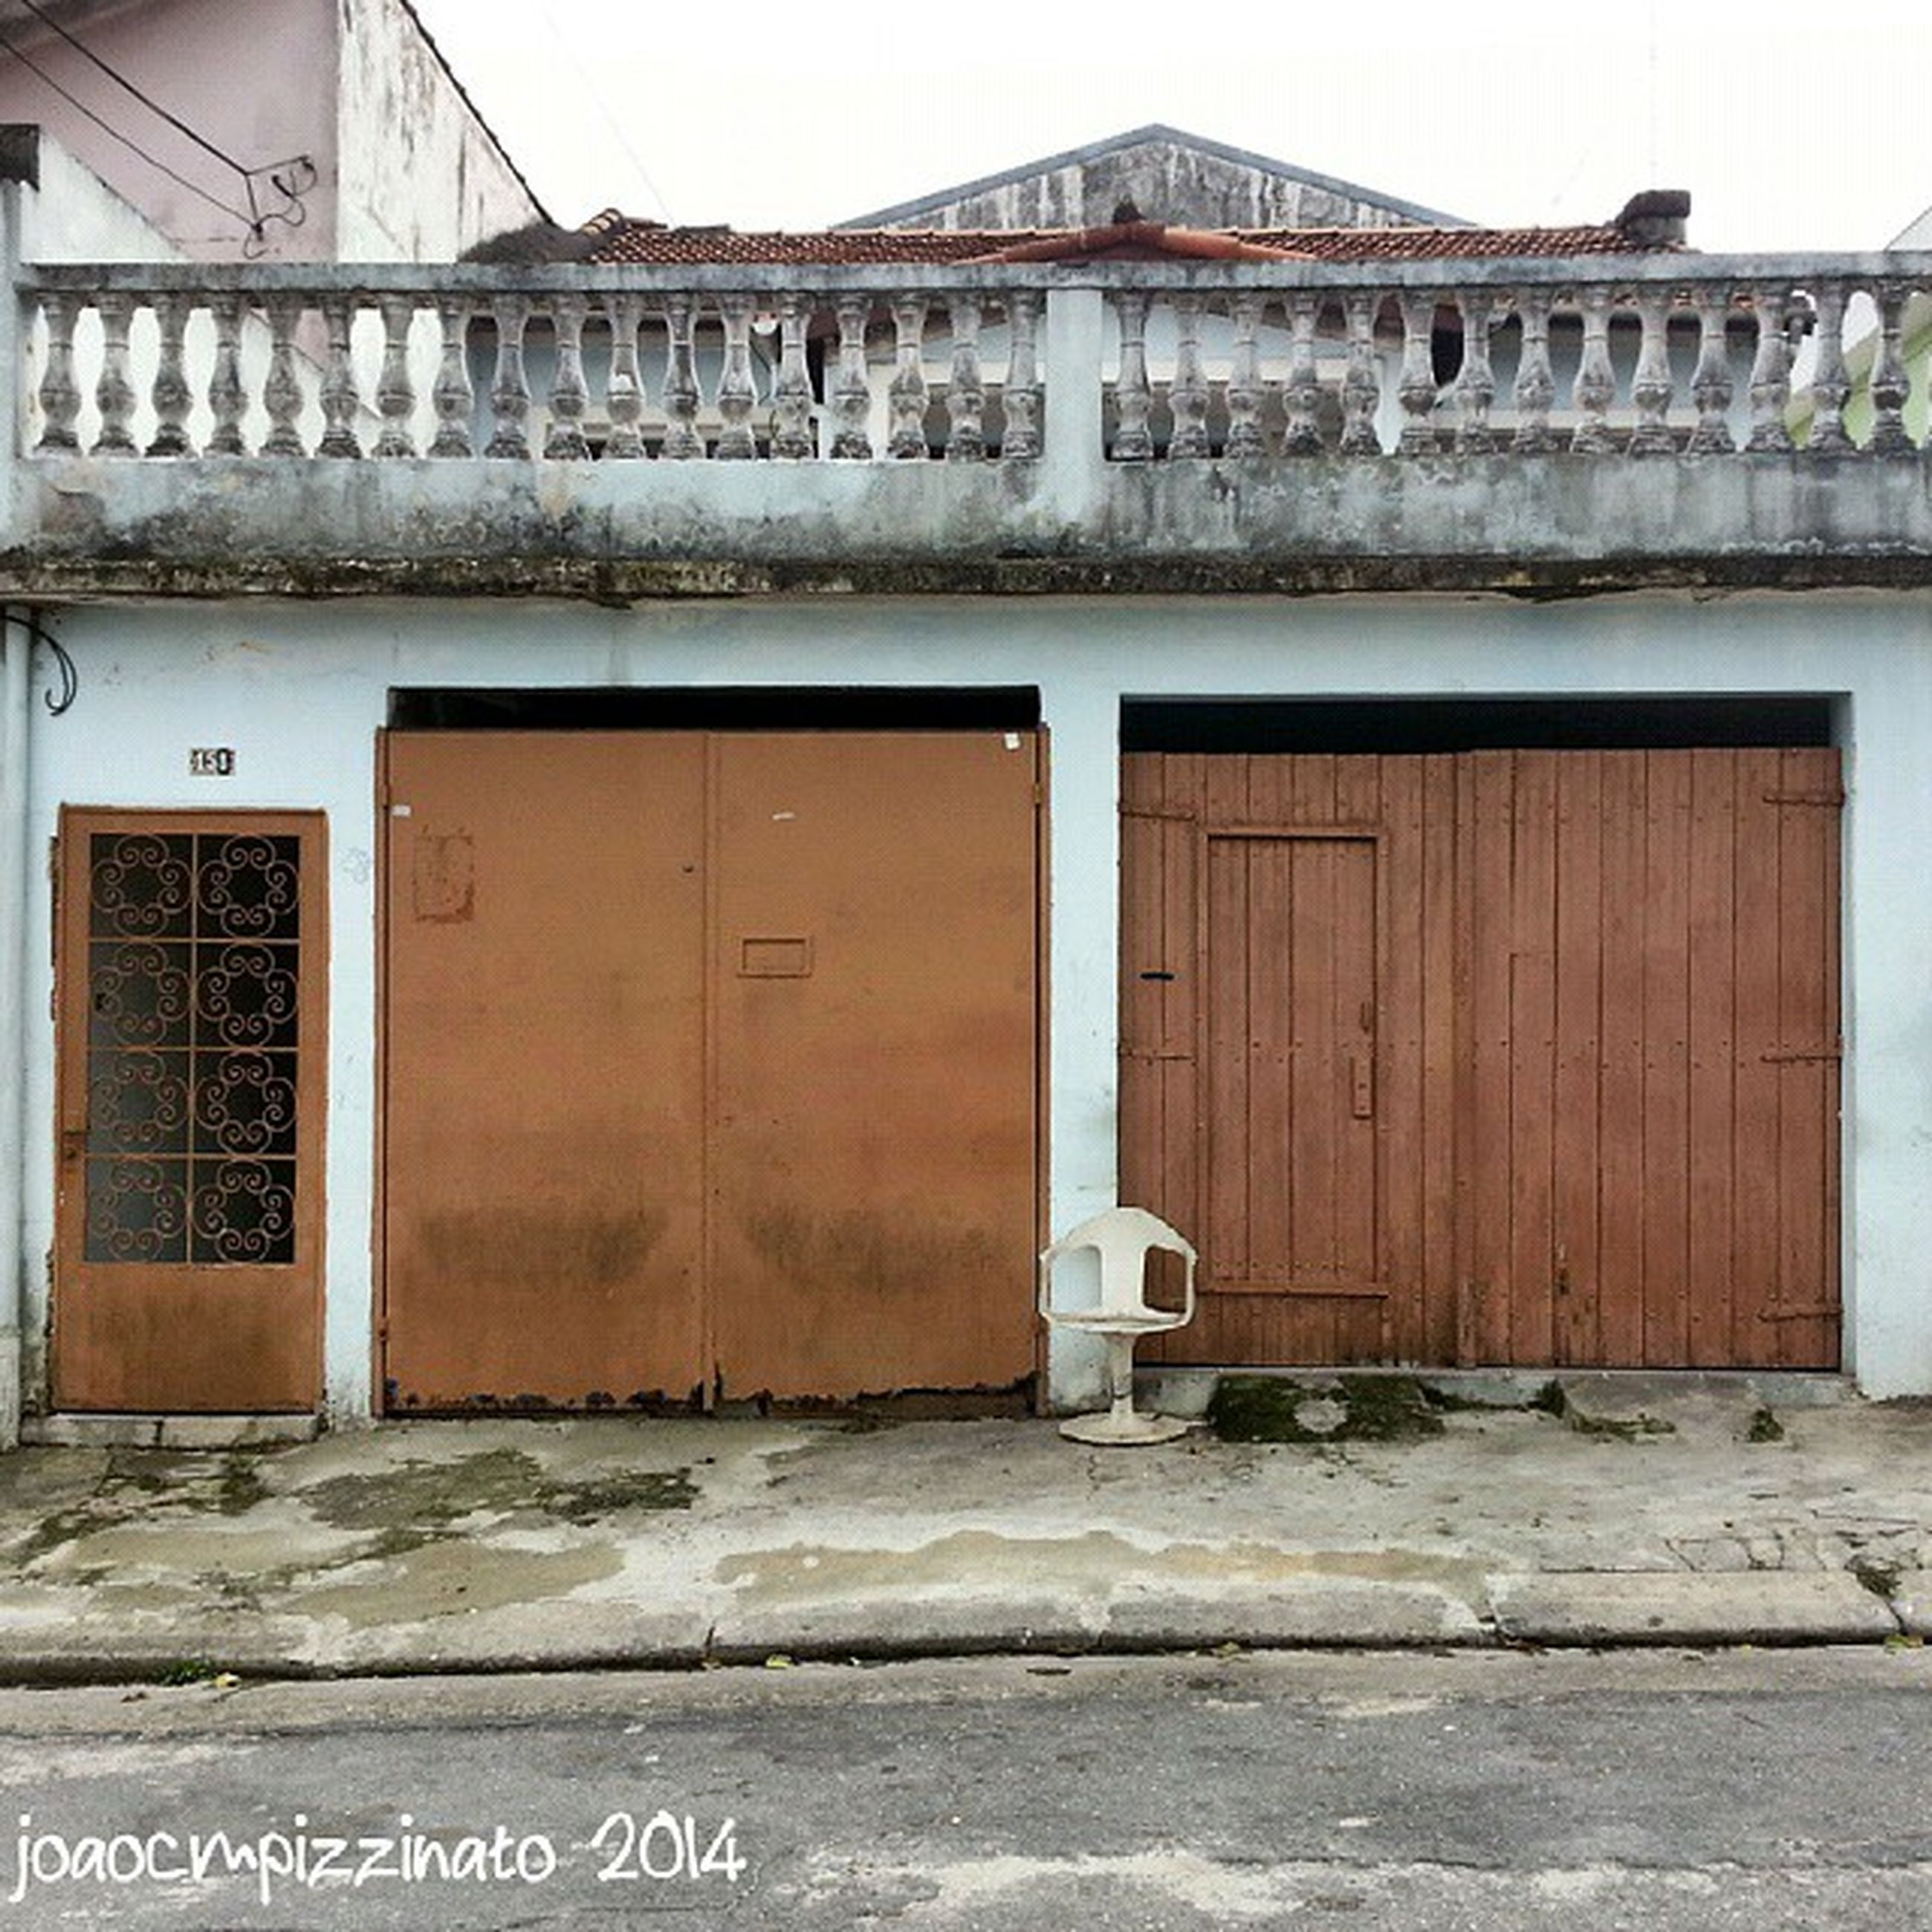 building exterior, architecture, built structure, door, entrance, closed, house, window, facade, text, residential structure, building, residential building, outdoors, day, old, wall - building feature, gate, exterior, city